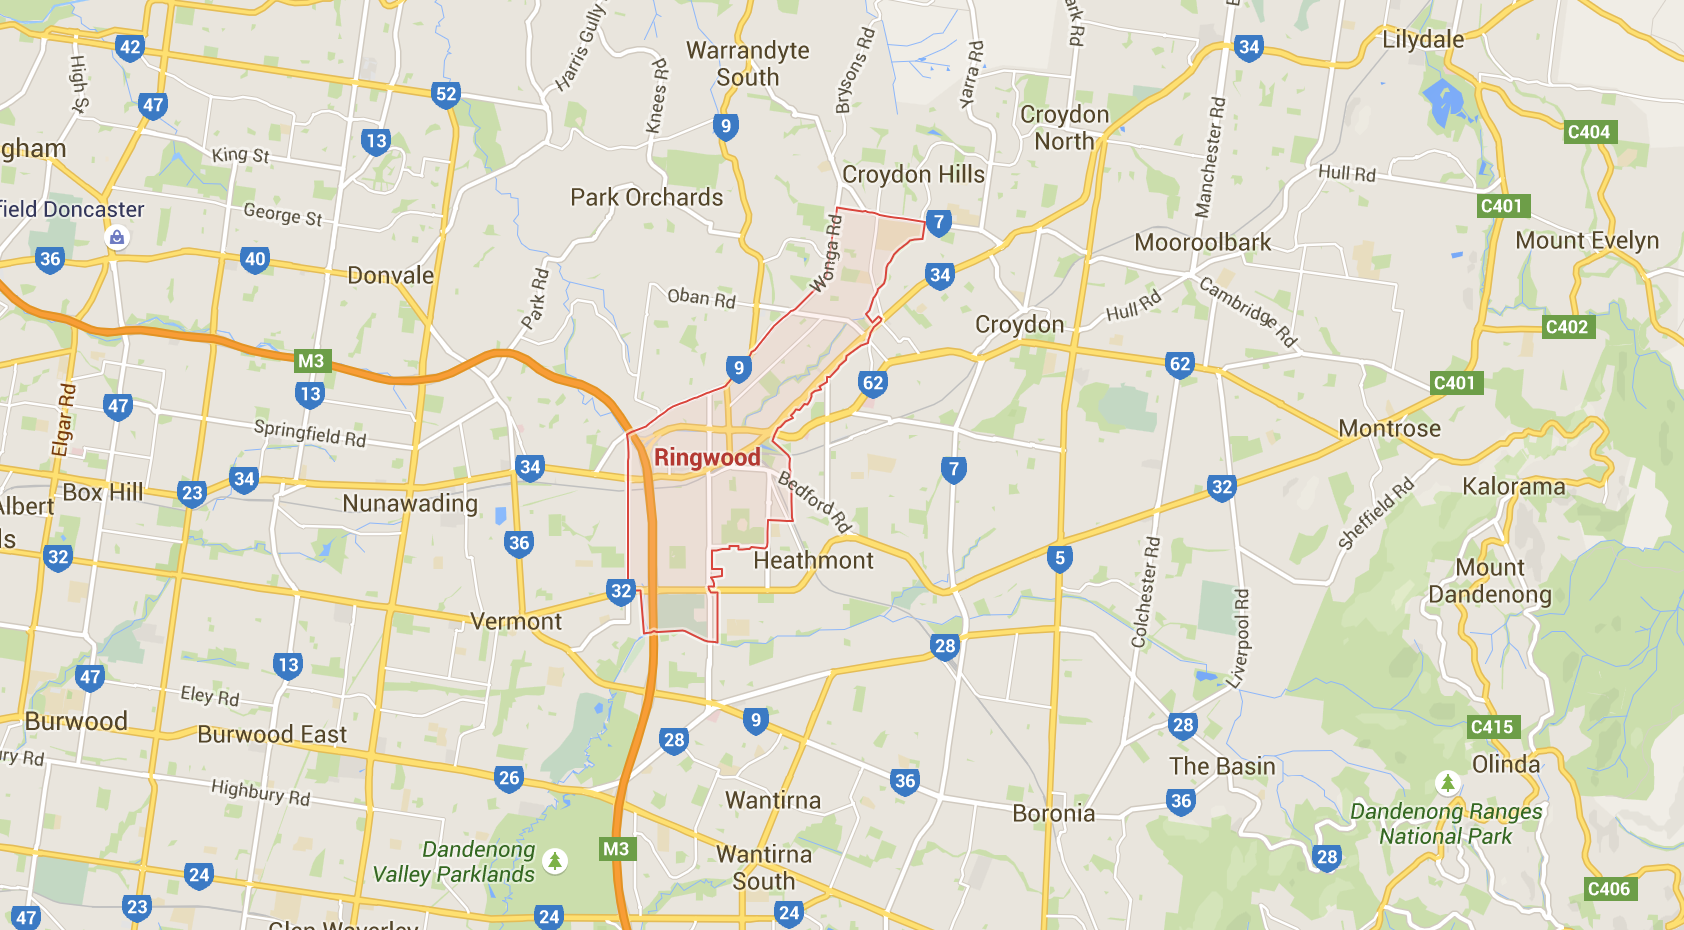 Wherever you live in Ringwood or beyond, we can help organise your lawnmowing! Image credit: Google Maps